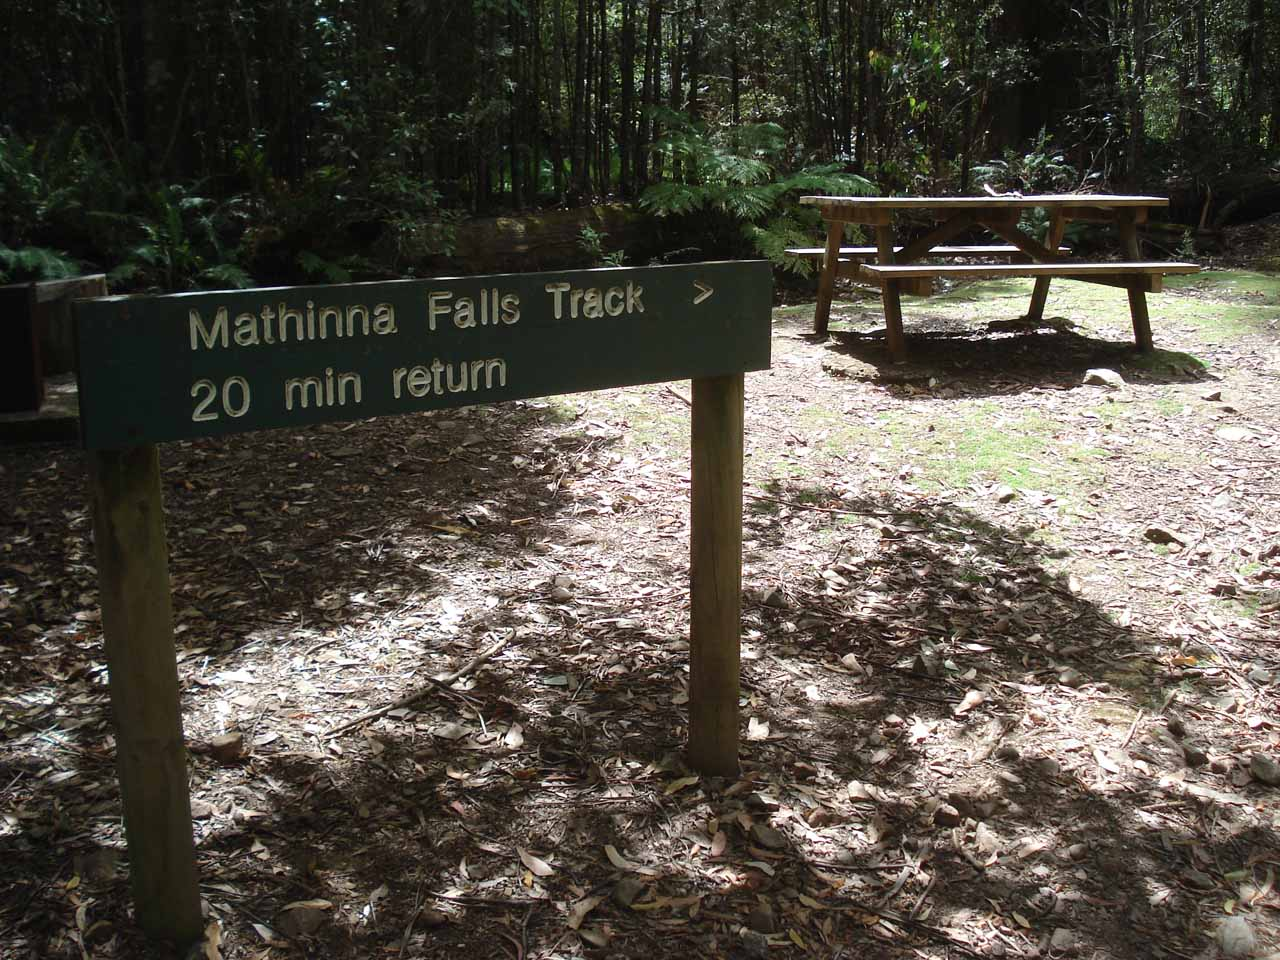 Although the literature said Mathinna Falls was 30 minutes return, this sign said it was only 20 minutes return